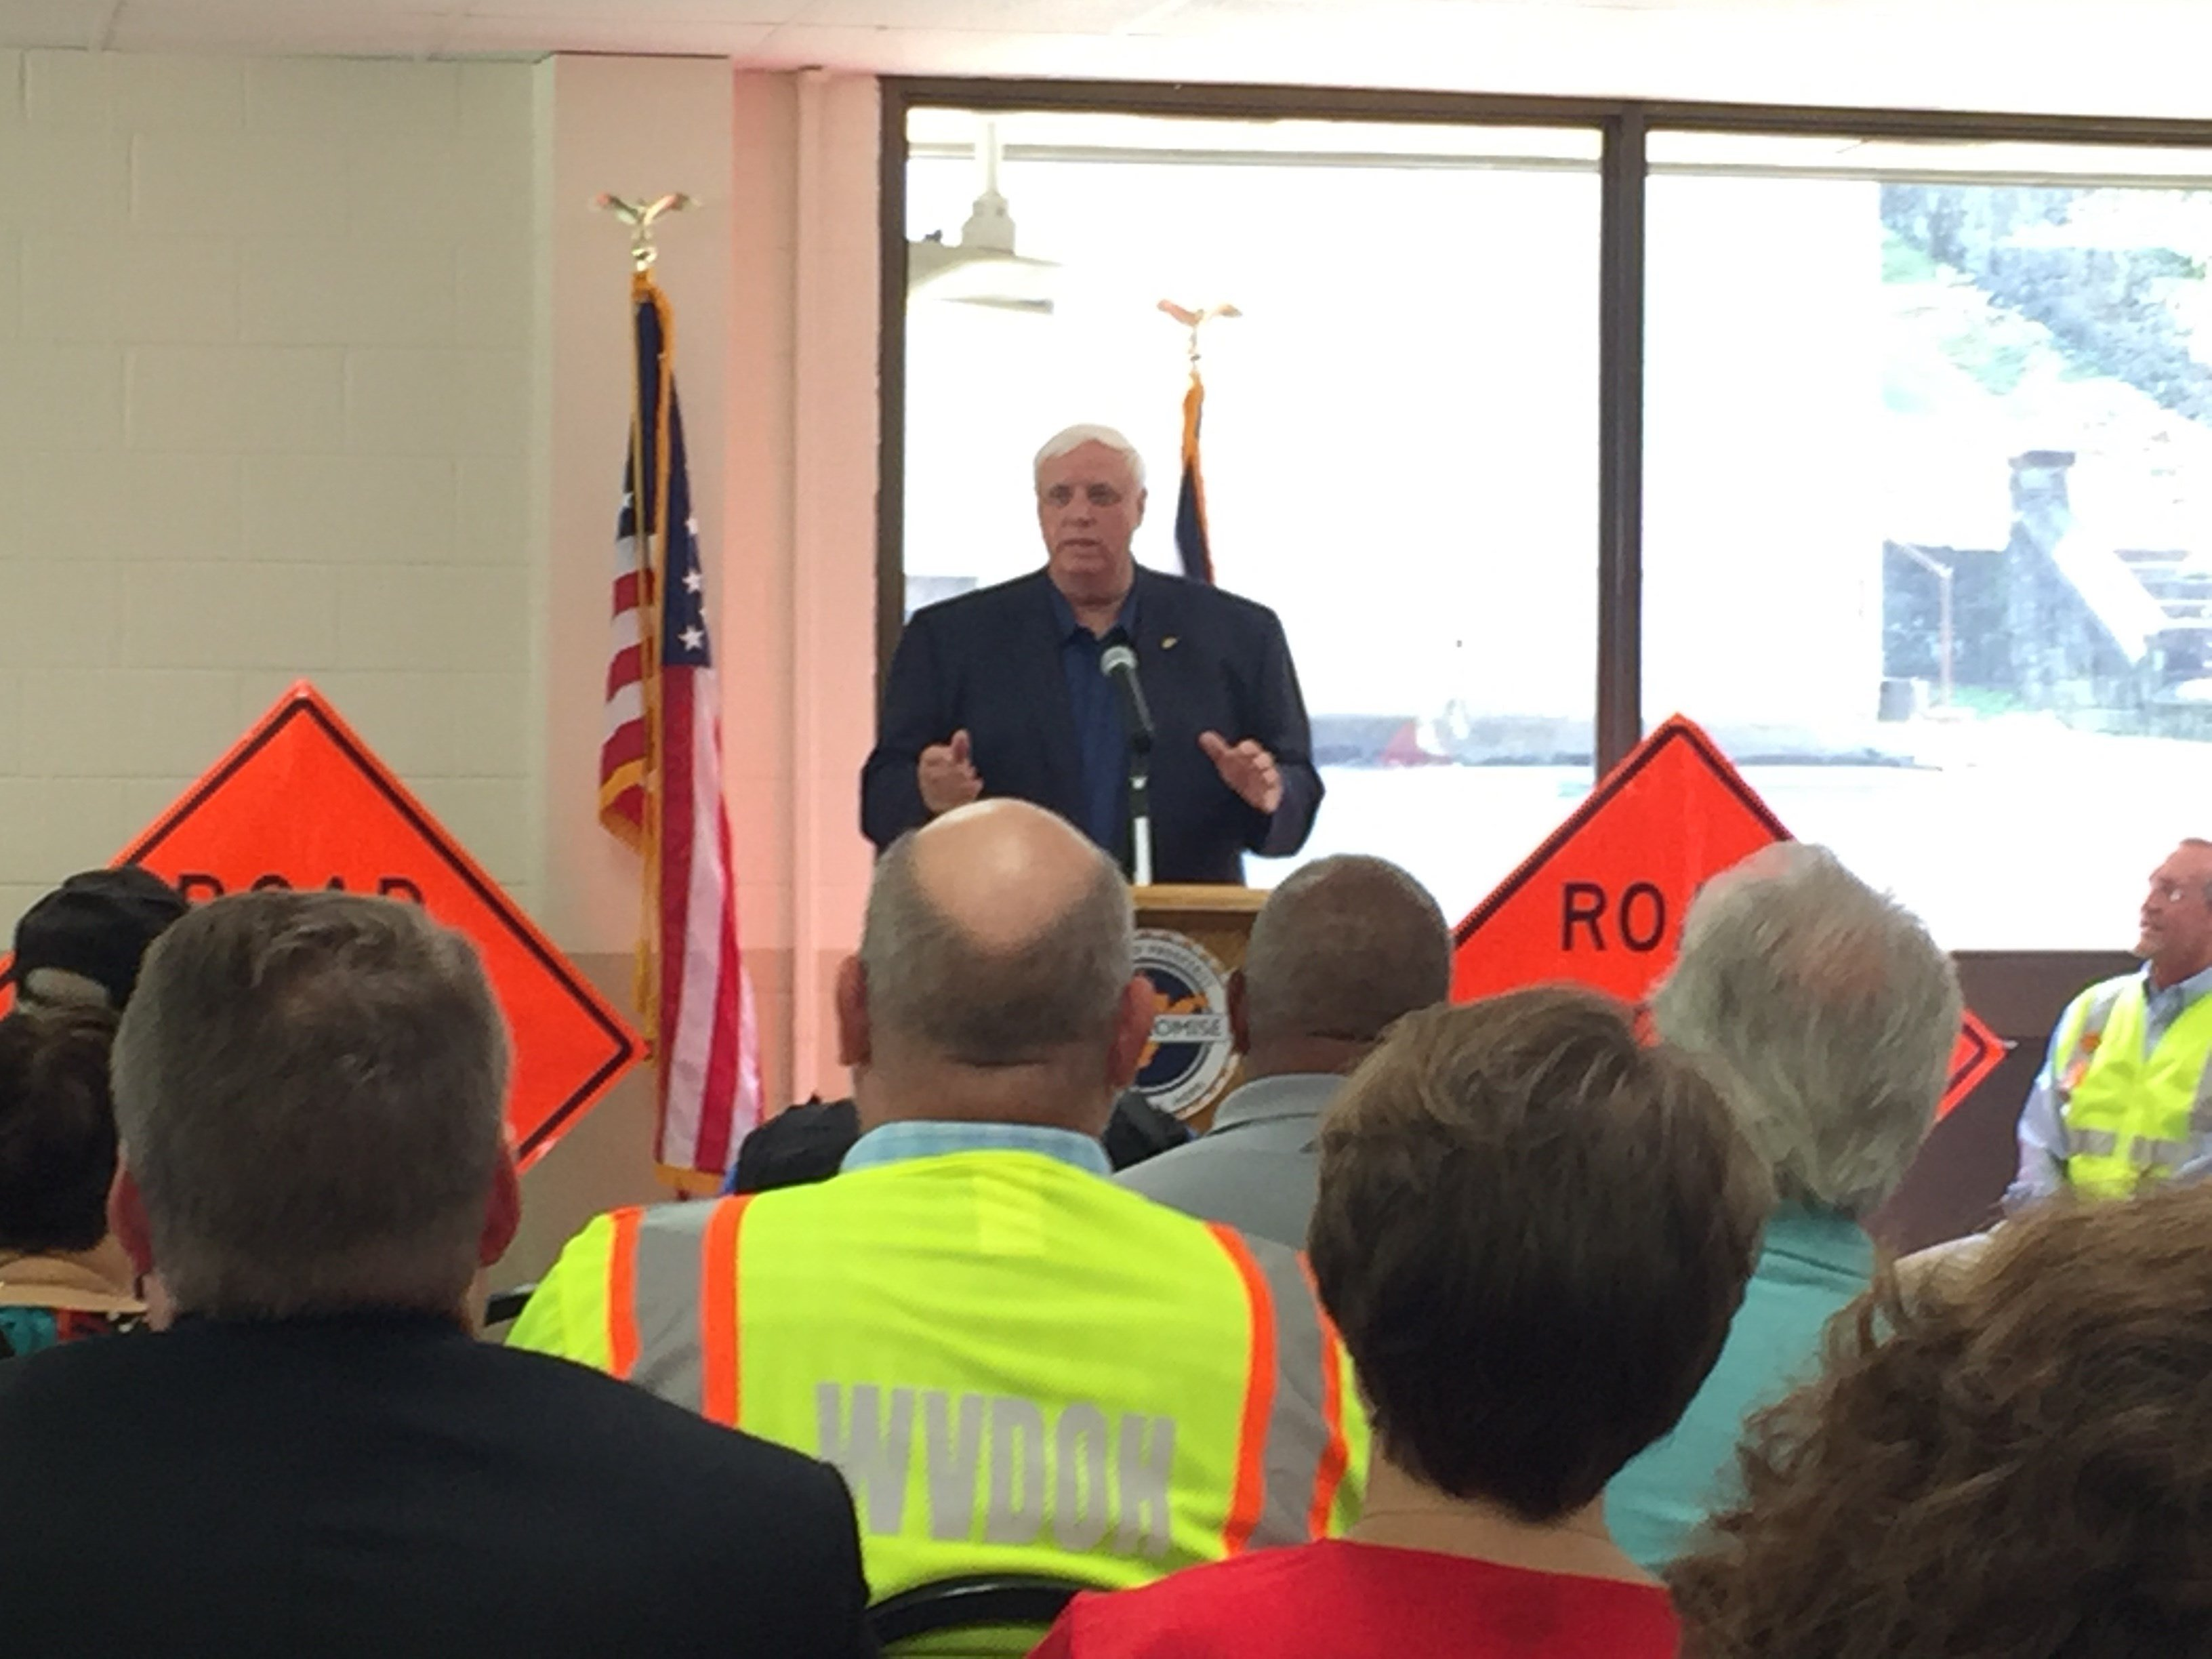 Jim Justice in Welch